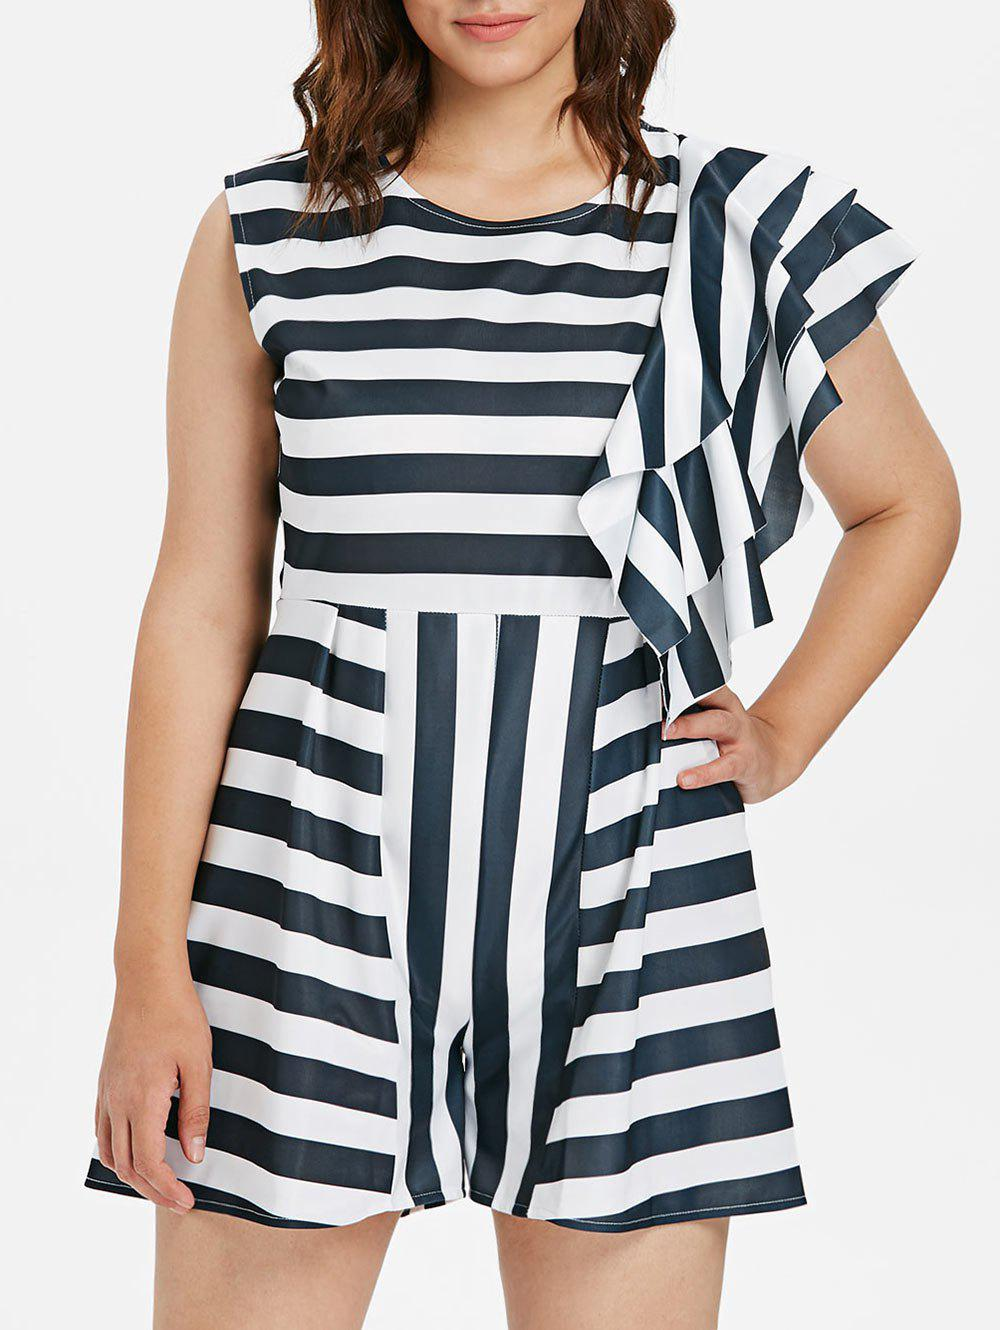 Store Layered Ruffle Detail Plus Size Striped Romper